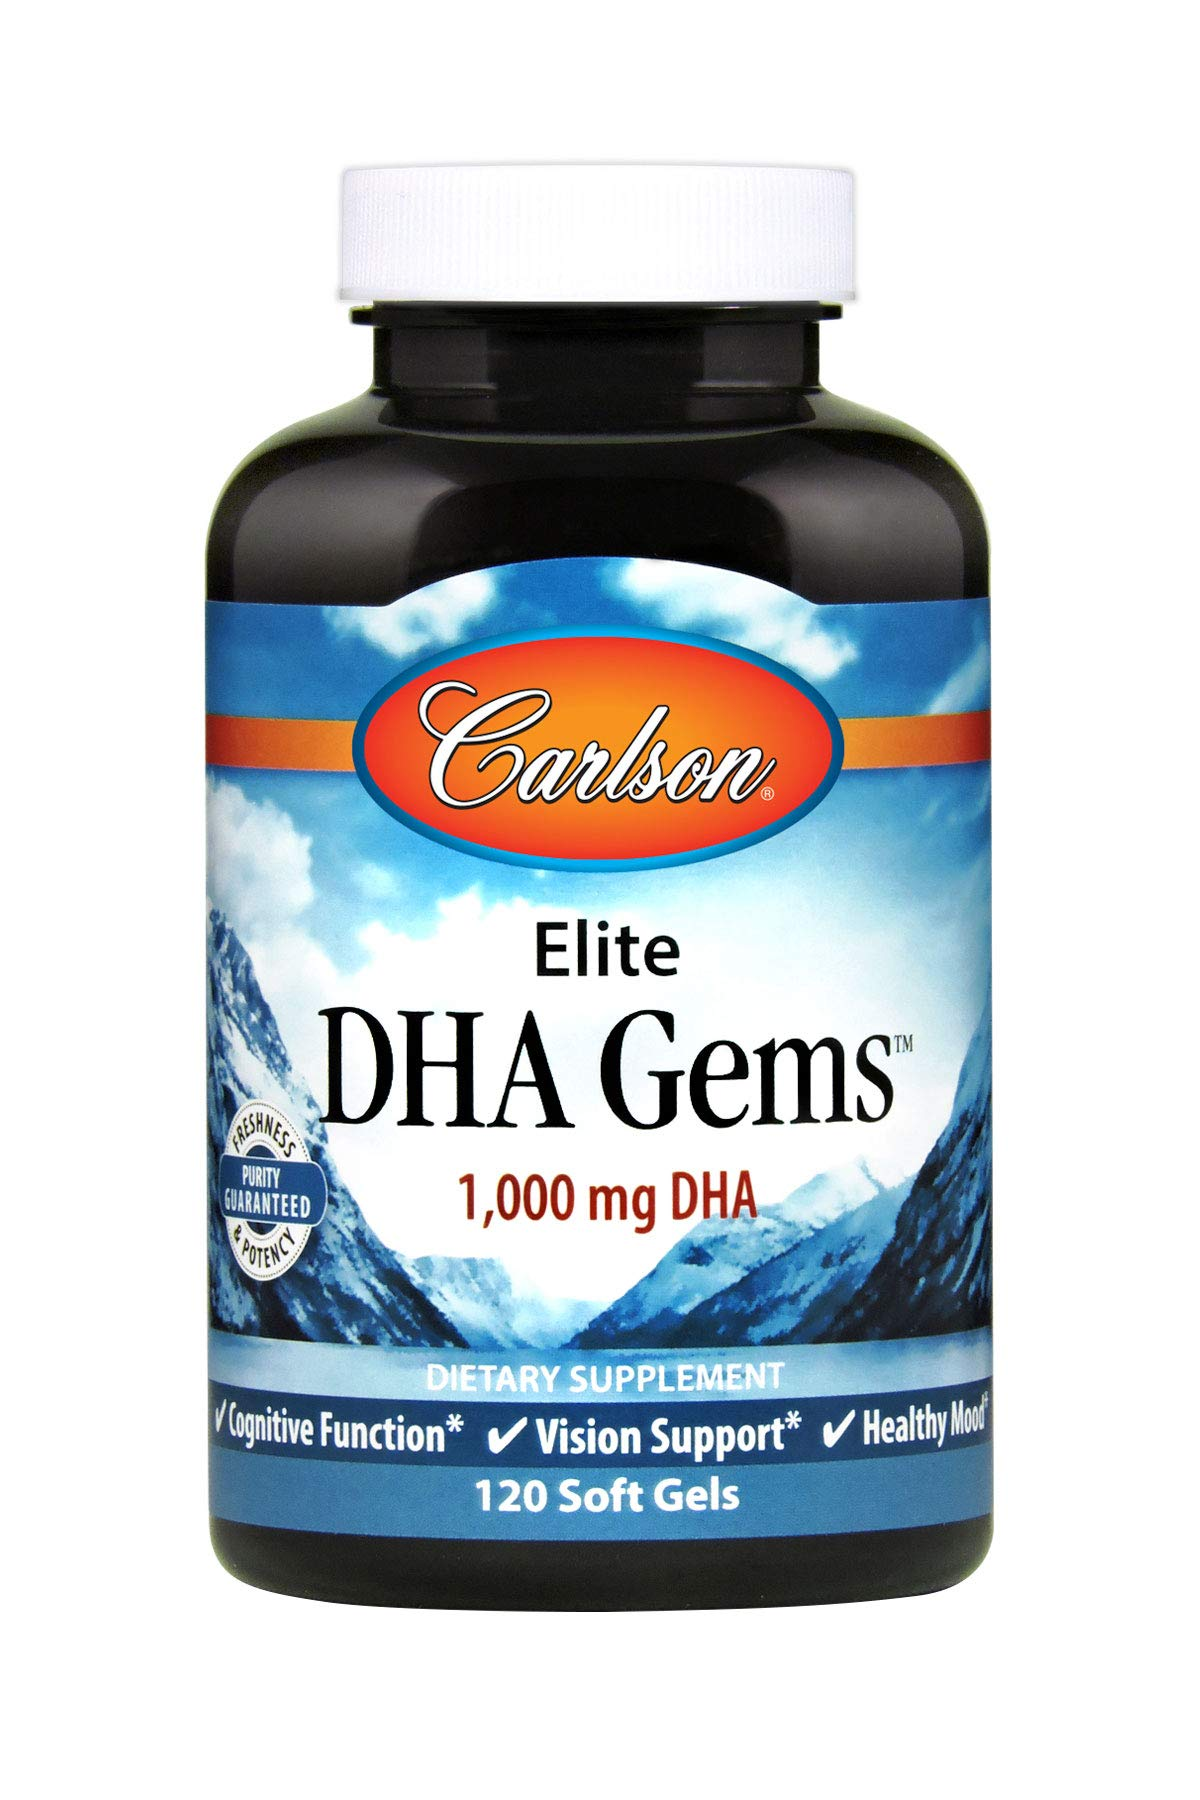 Carlson - Elite DHA Gems, 1000 mg DHA, Supports Healthy Brain Function & Vision, 120 Soft gels by Carlson